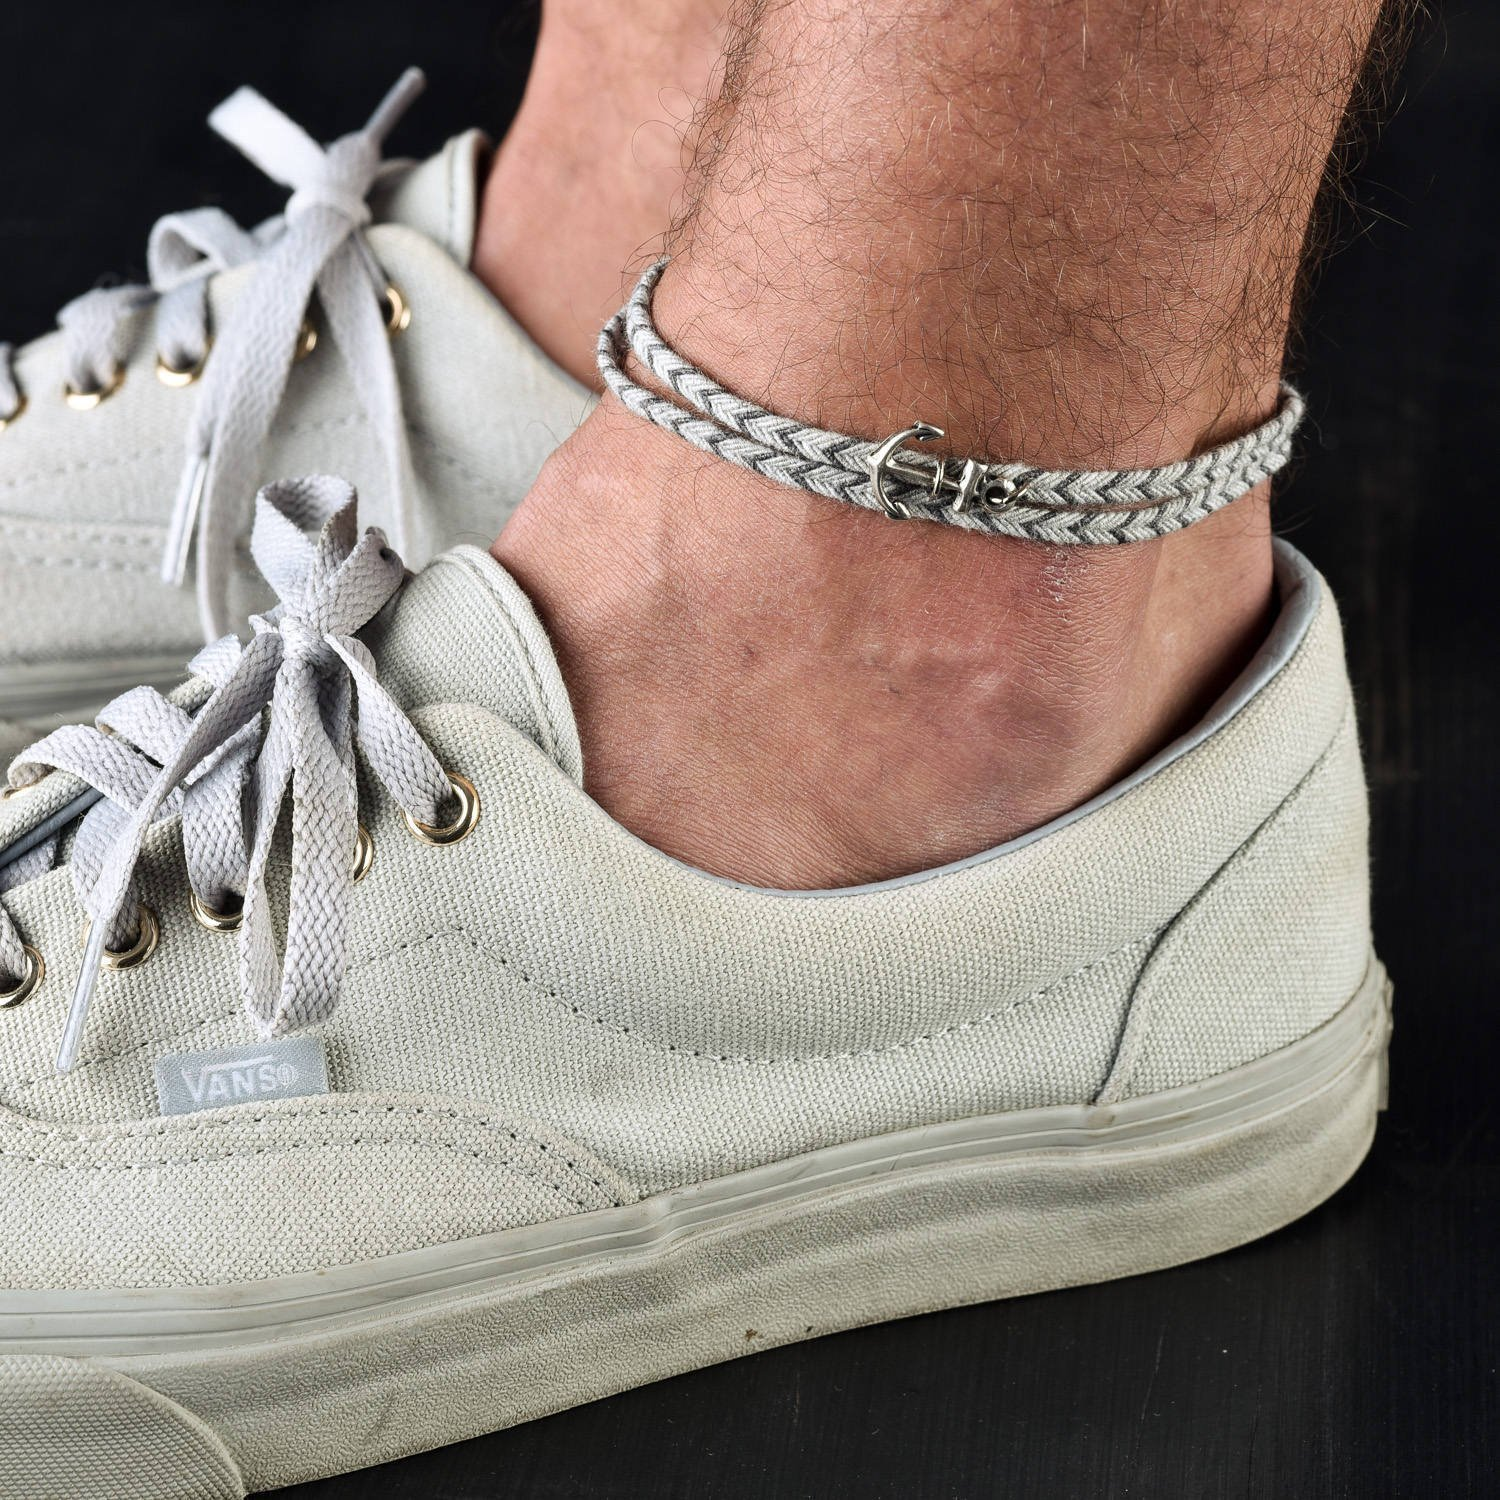 myshoplah wear guys wearing ankle bracelets to anklets anklet dare for